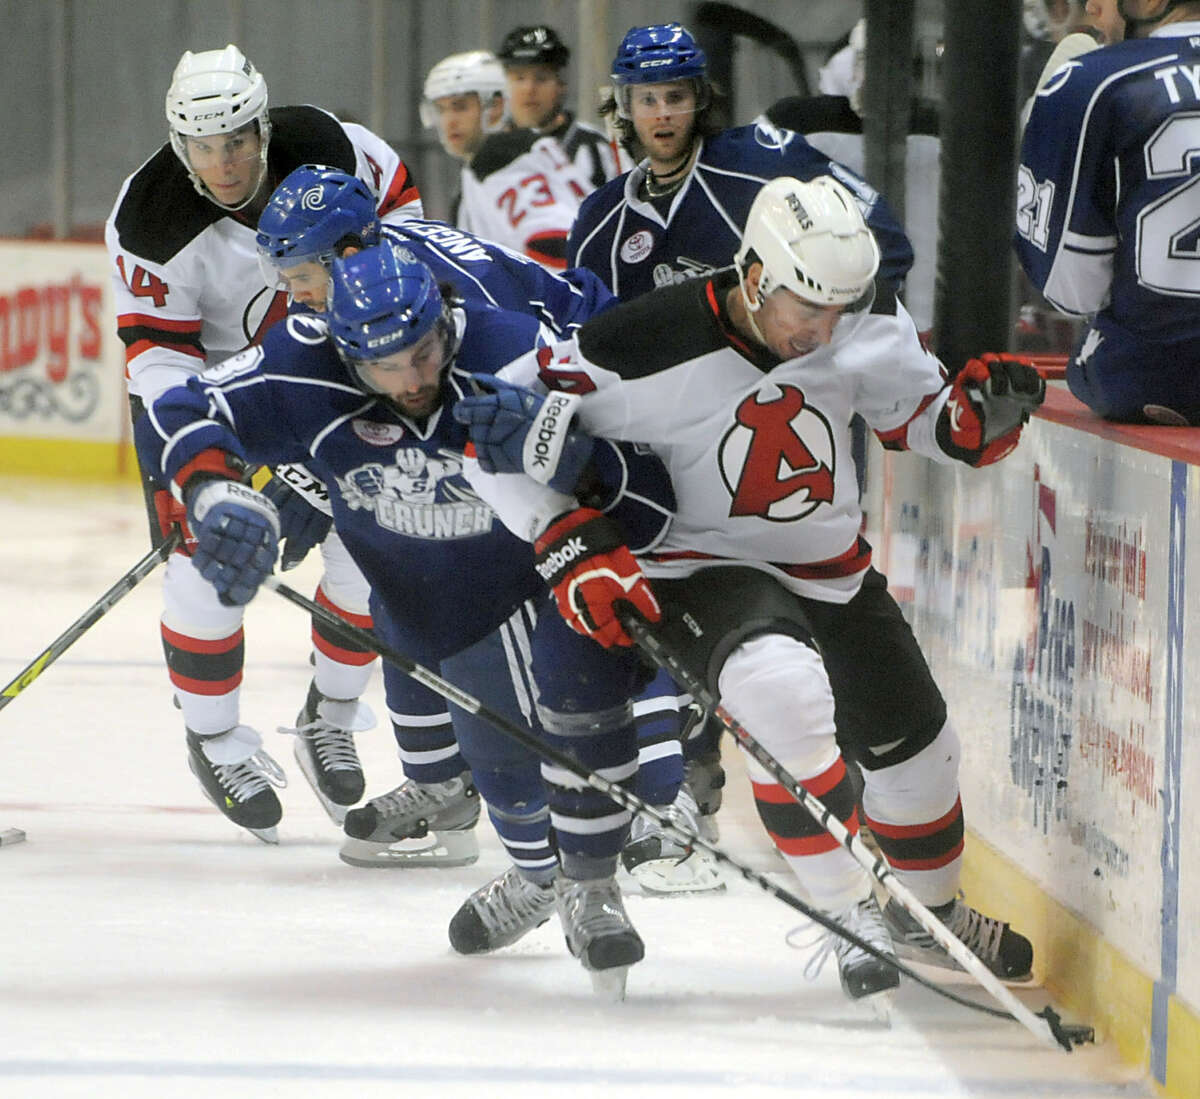 Phil DeSimone of the Albany Devils, right, battles for the puck with Danick Gauthier of Syracuse during a hockey game at the Times Union Center on Monday Feb. 18, 2013 in Albany, N.Y. (Lori Van Buren / Times Union)